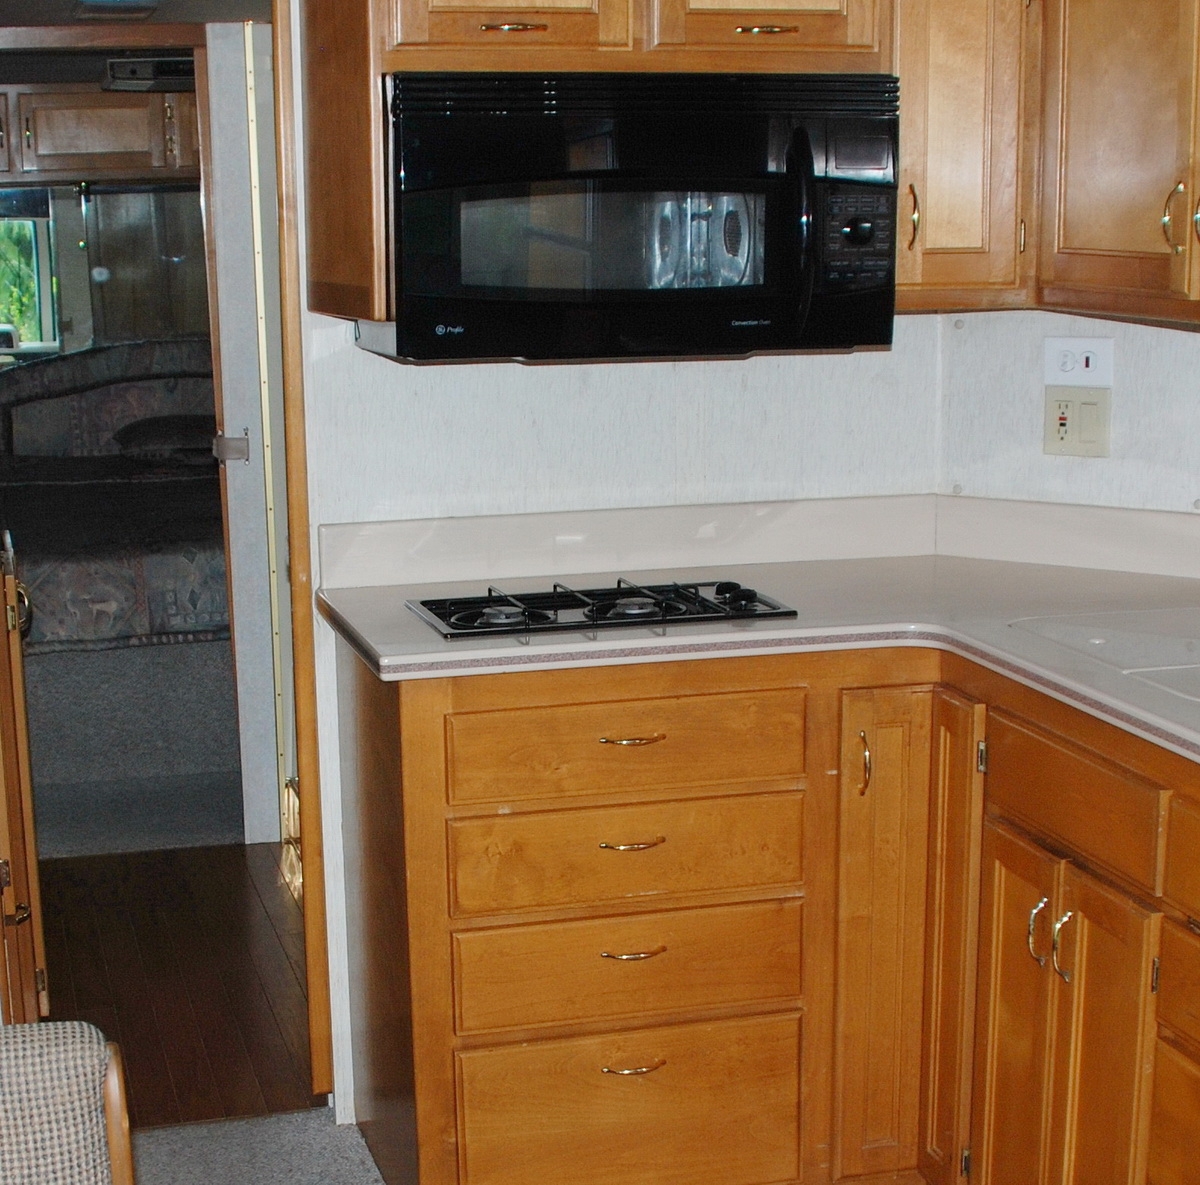 medium resolution of our 1996 safari sahara 3530 came with a seaward princess 2273 two burner stove these